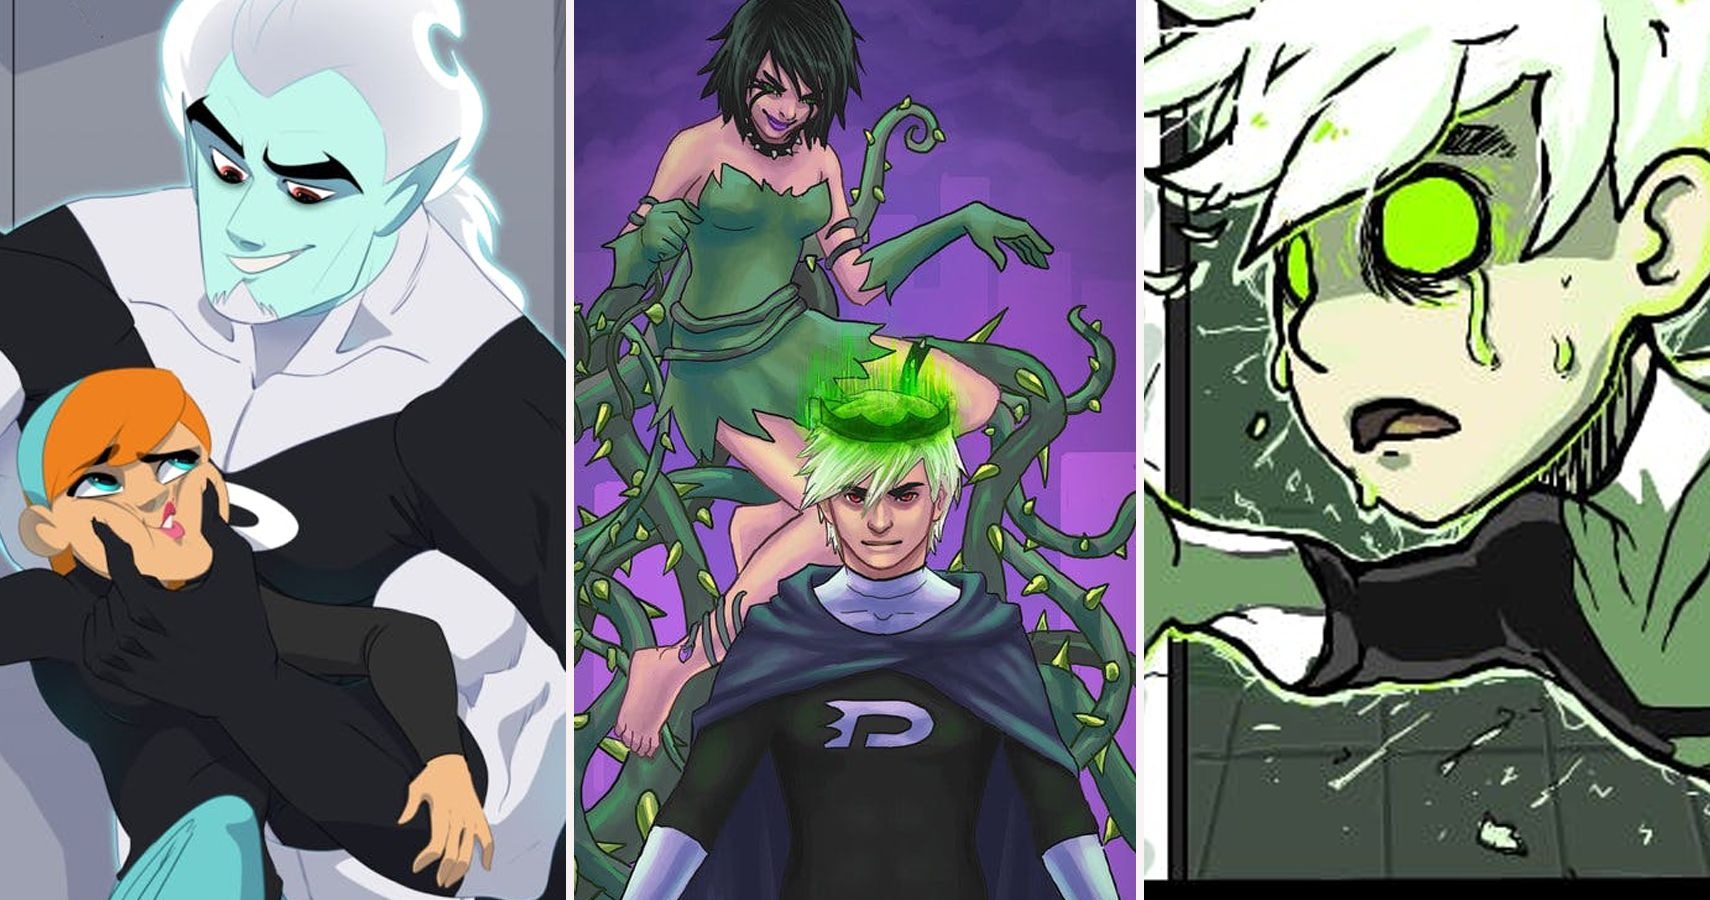 25 Extra Cool Fan Pictures Of Danny Phantom (That Are Kinda